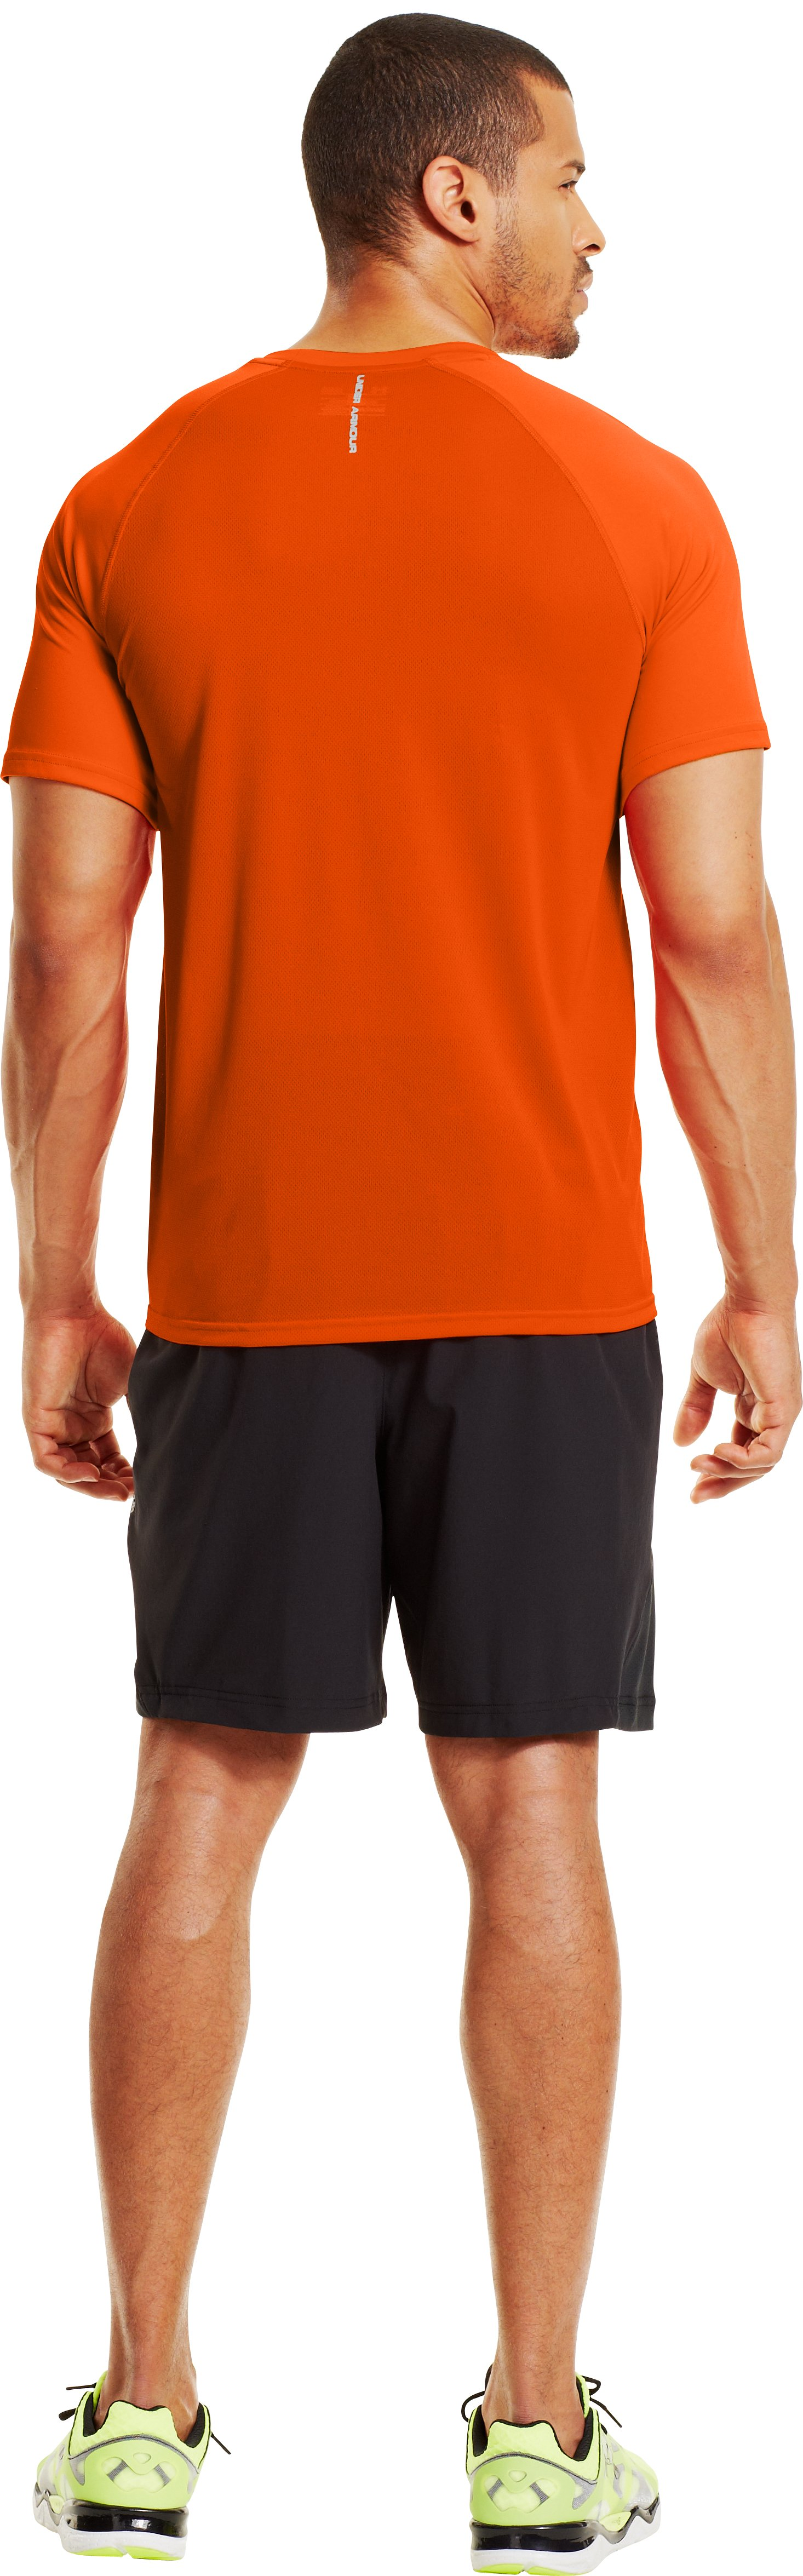 Men's HeatGear® Flyweight Run Short Sleeve, OUTRAGEOUS ORANGE, Back